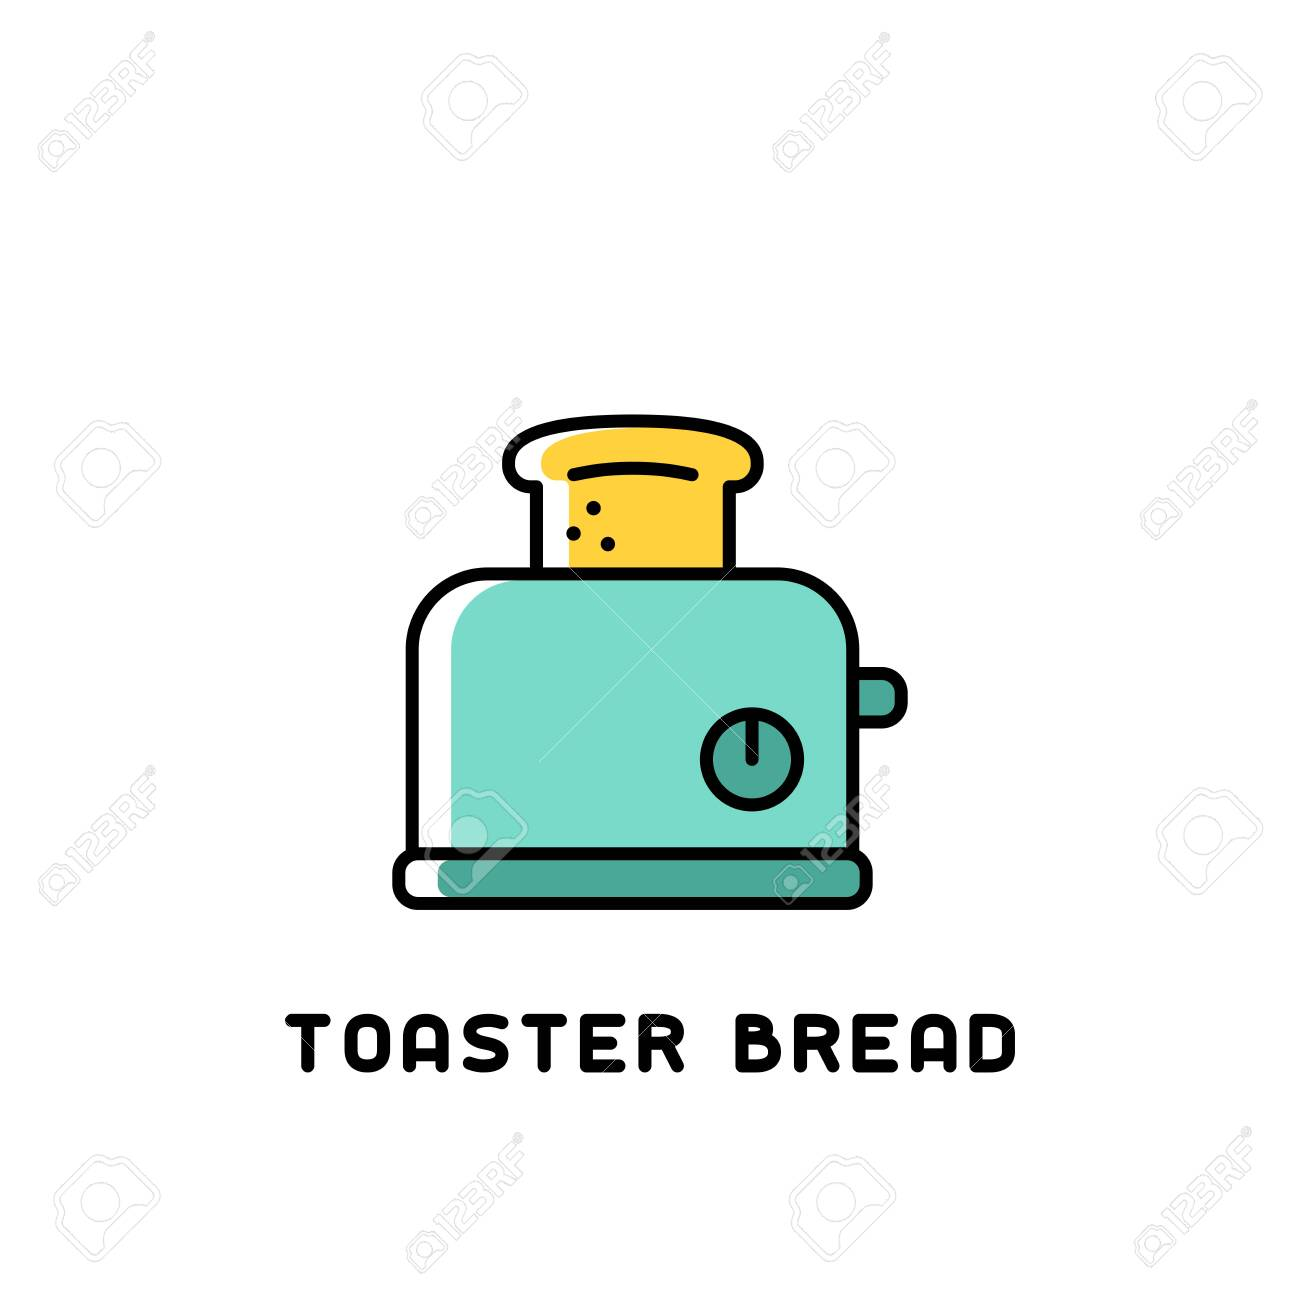 toaster bread icon in bright contour style on white background - 130984751